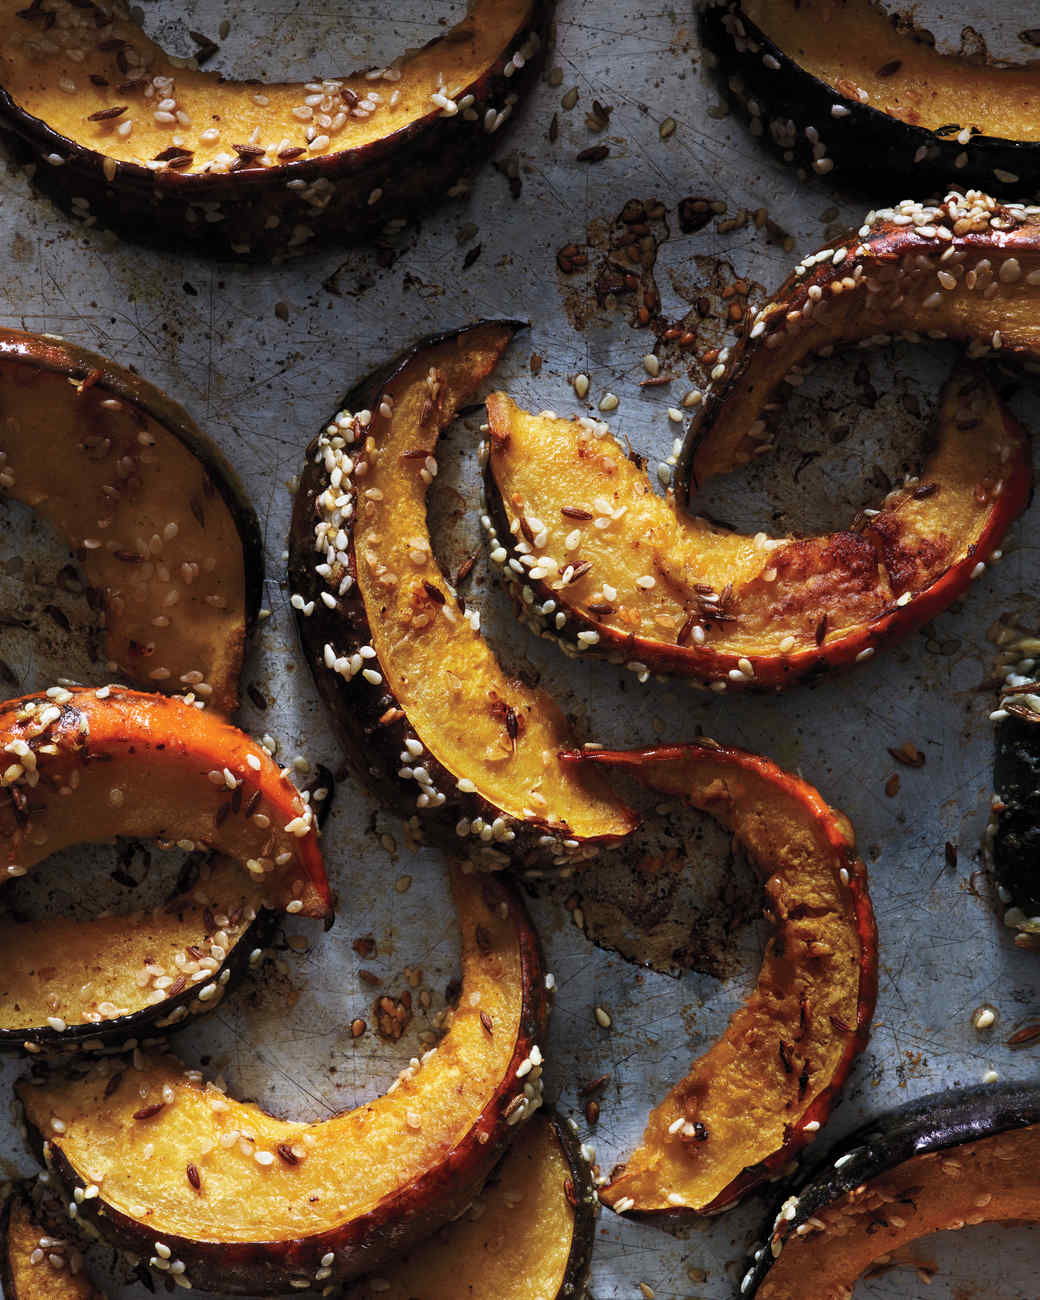 Roasted Squash With Sesame Seeds And In